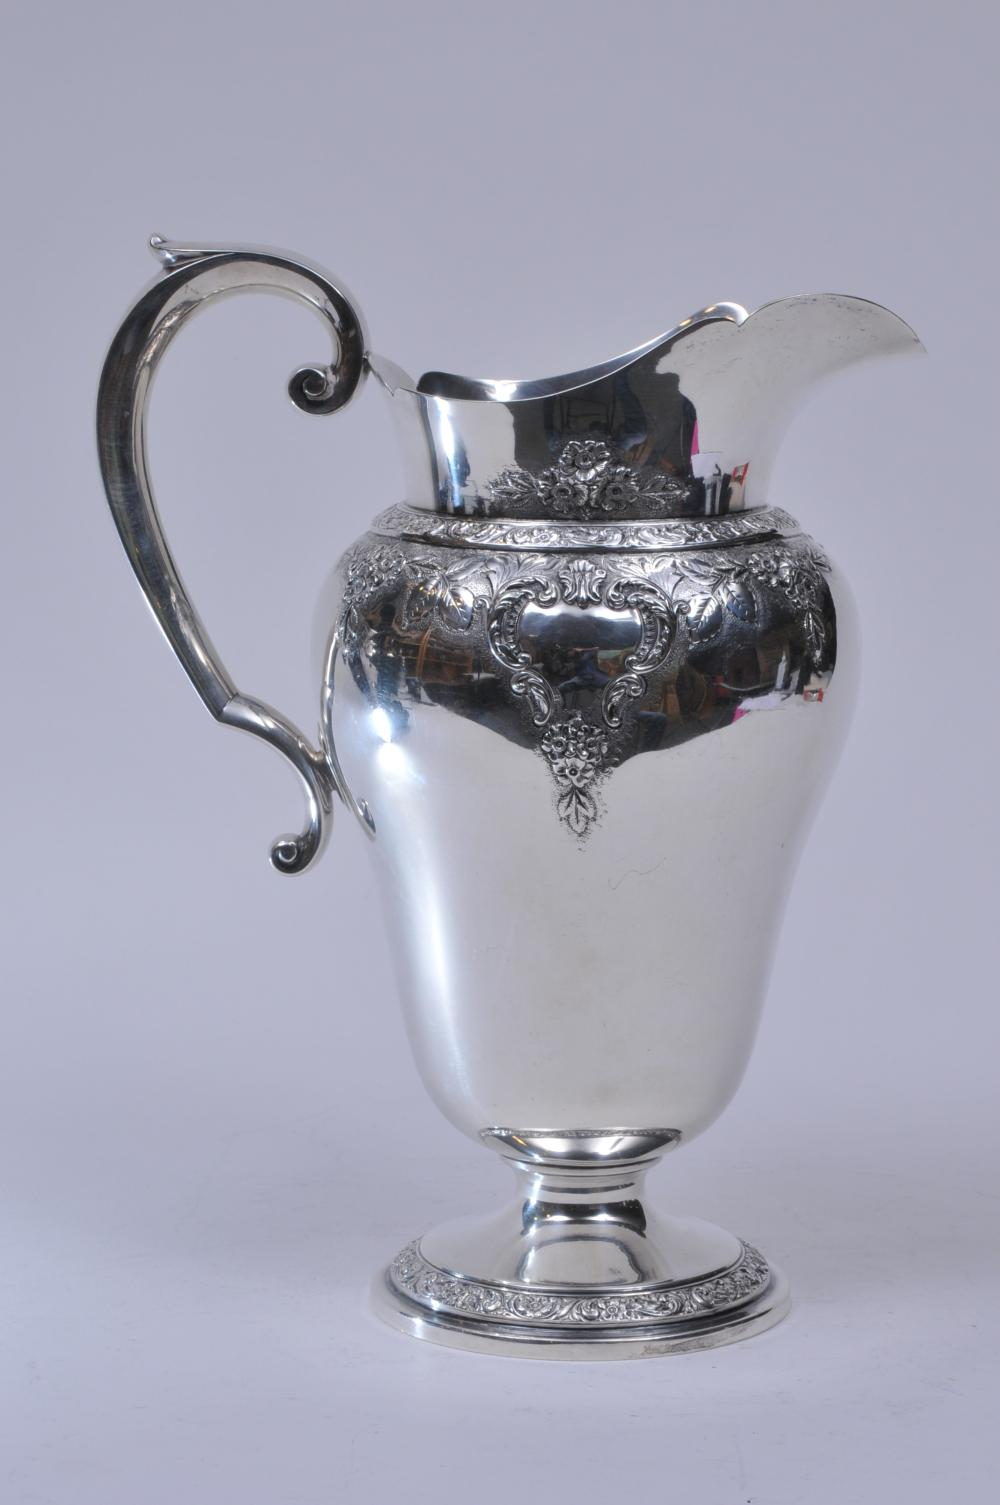 """Watson Company. Sterling silver large water pitcher. Shaped spout. Floral repousse and chased relief decoration. 11-1/2"""" high. Good condition. 31 ozt."""